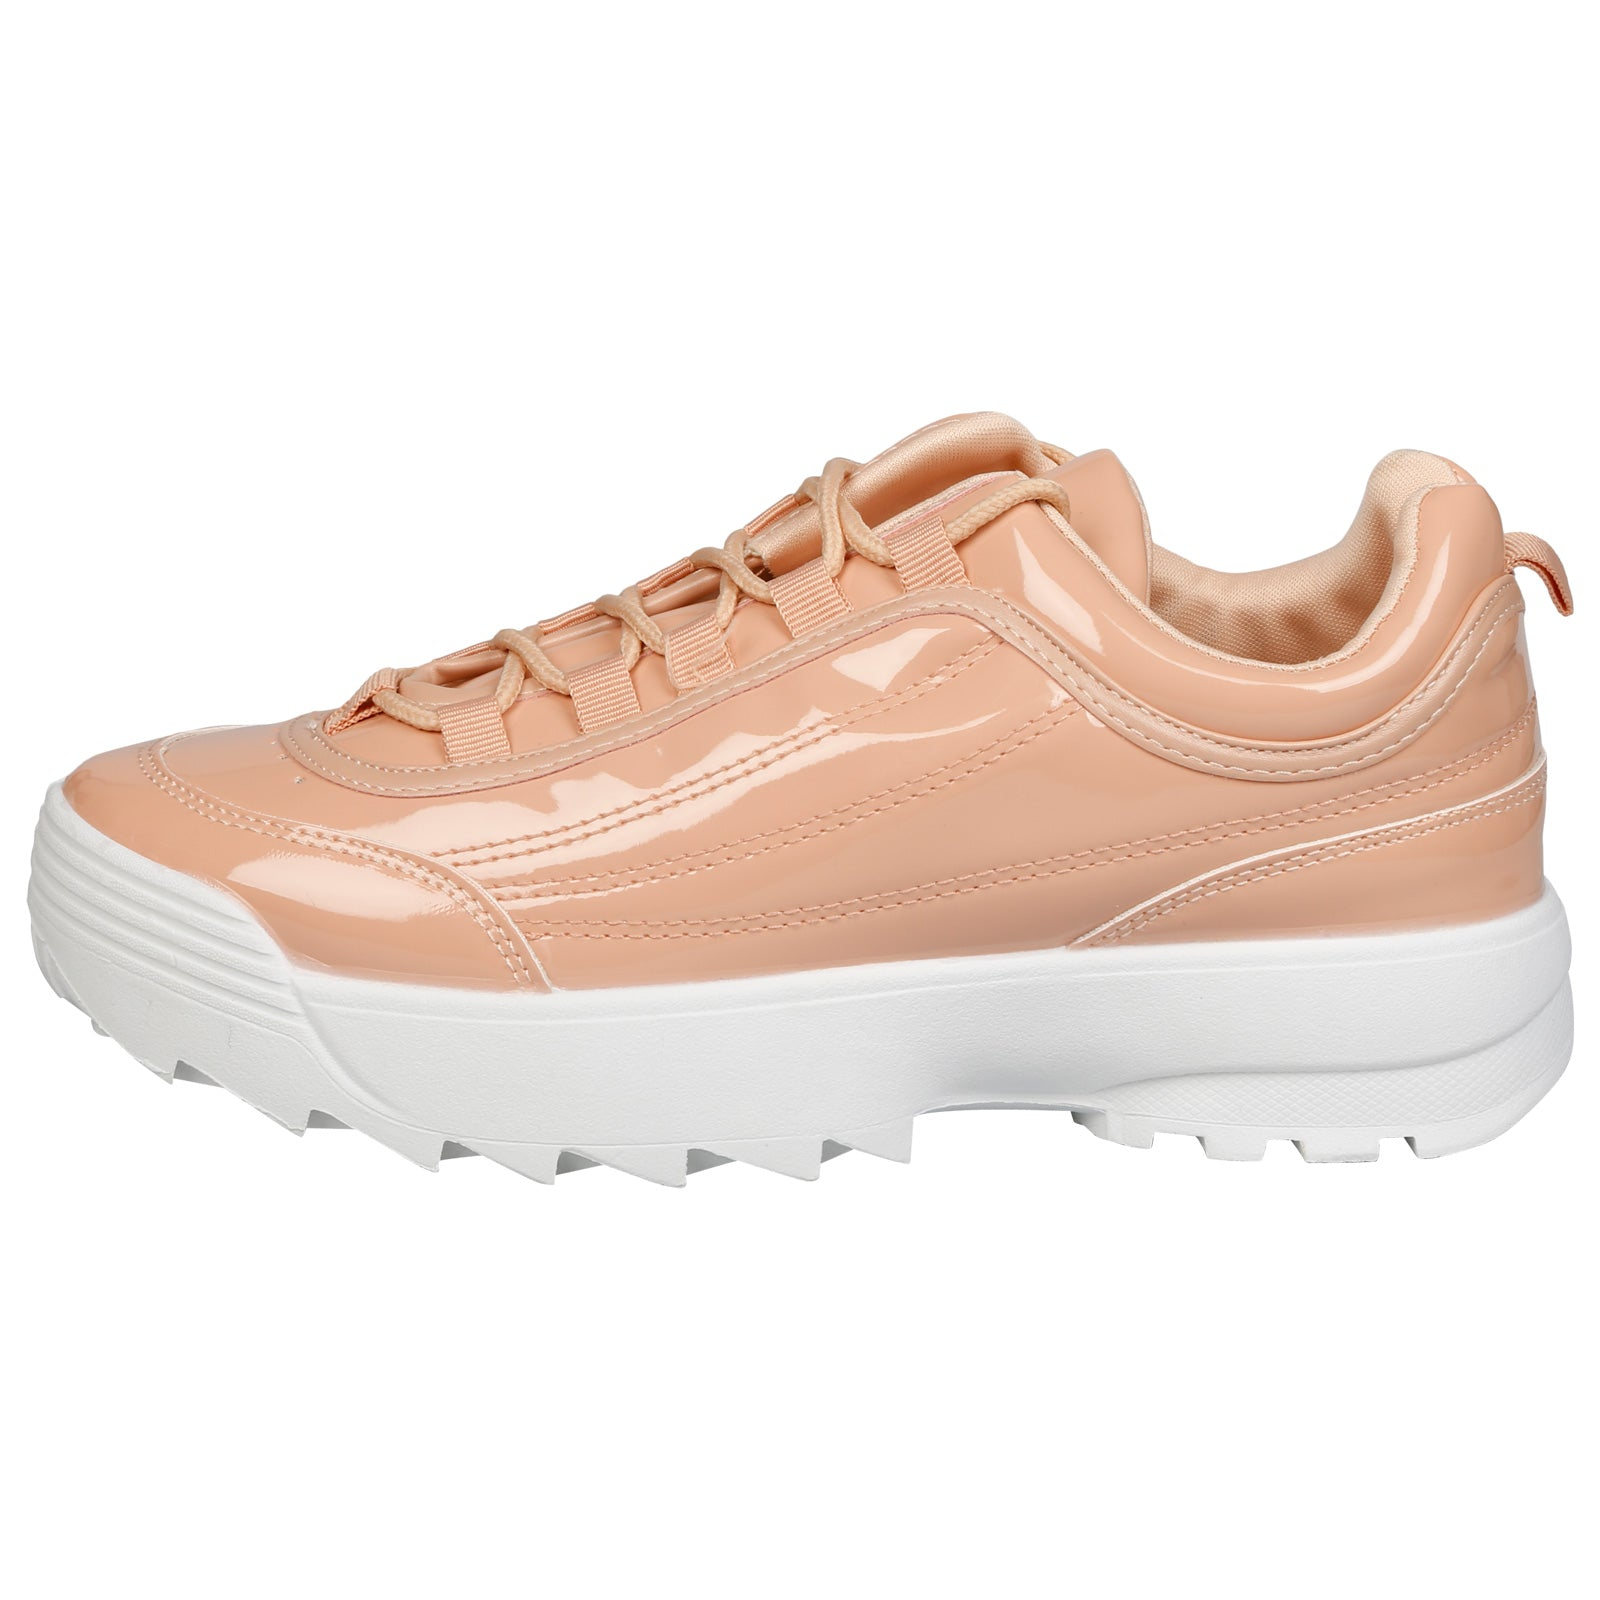 Emmie Chunky Lace Up Trainers in Pink Patent - Feet First Fashion